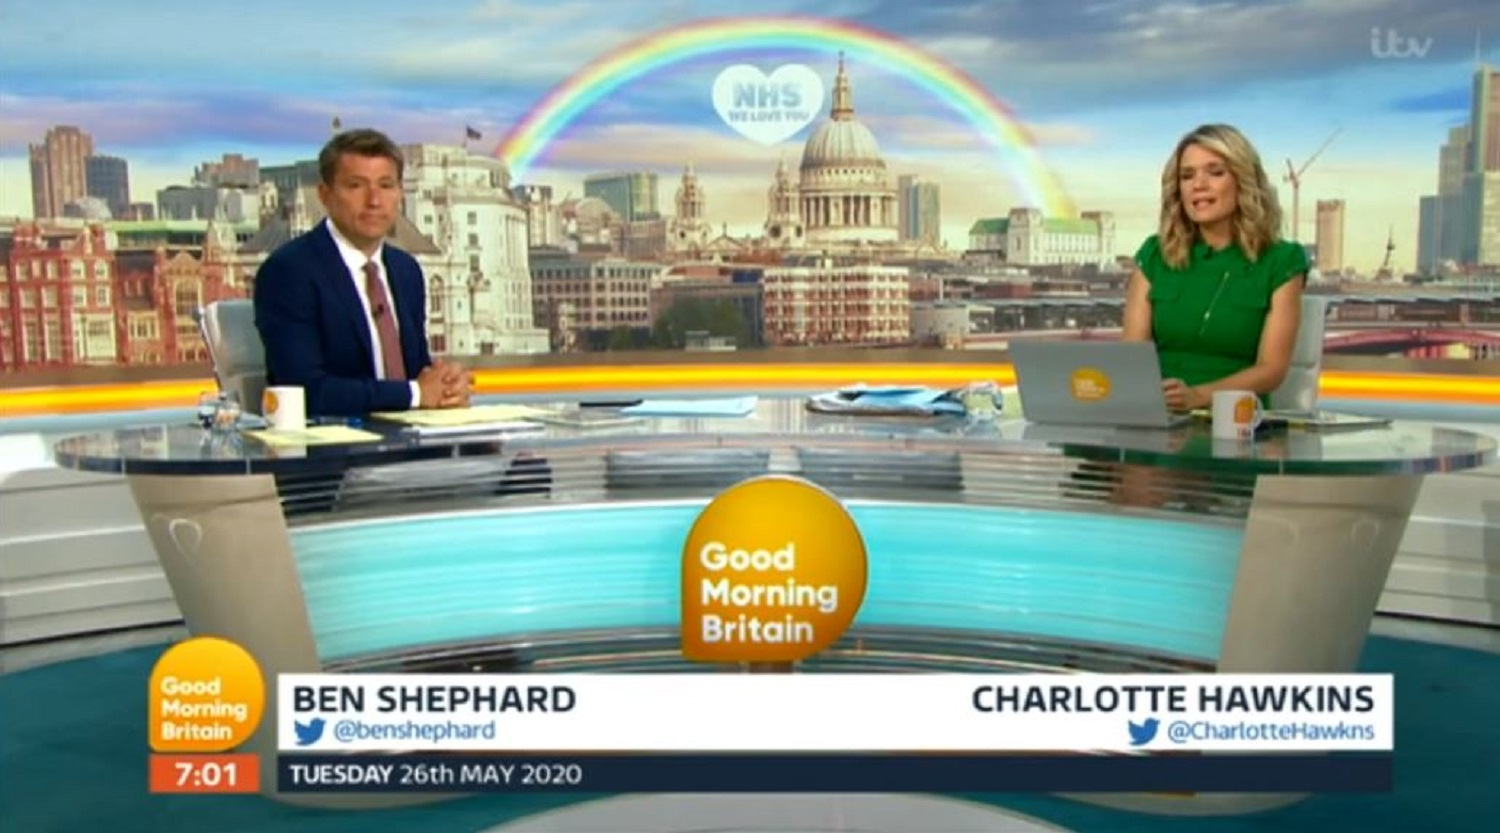 Good Morning Britain: Ben Shephard and Charlotte Hawkins in tears over emotional interview